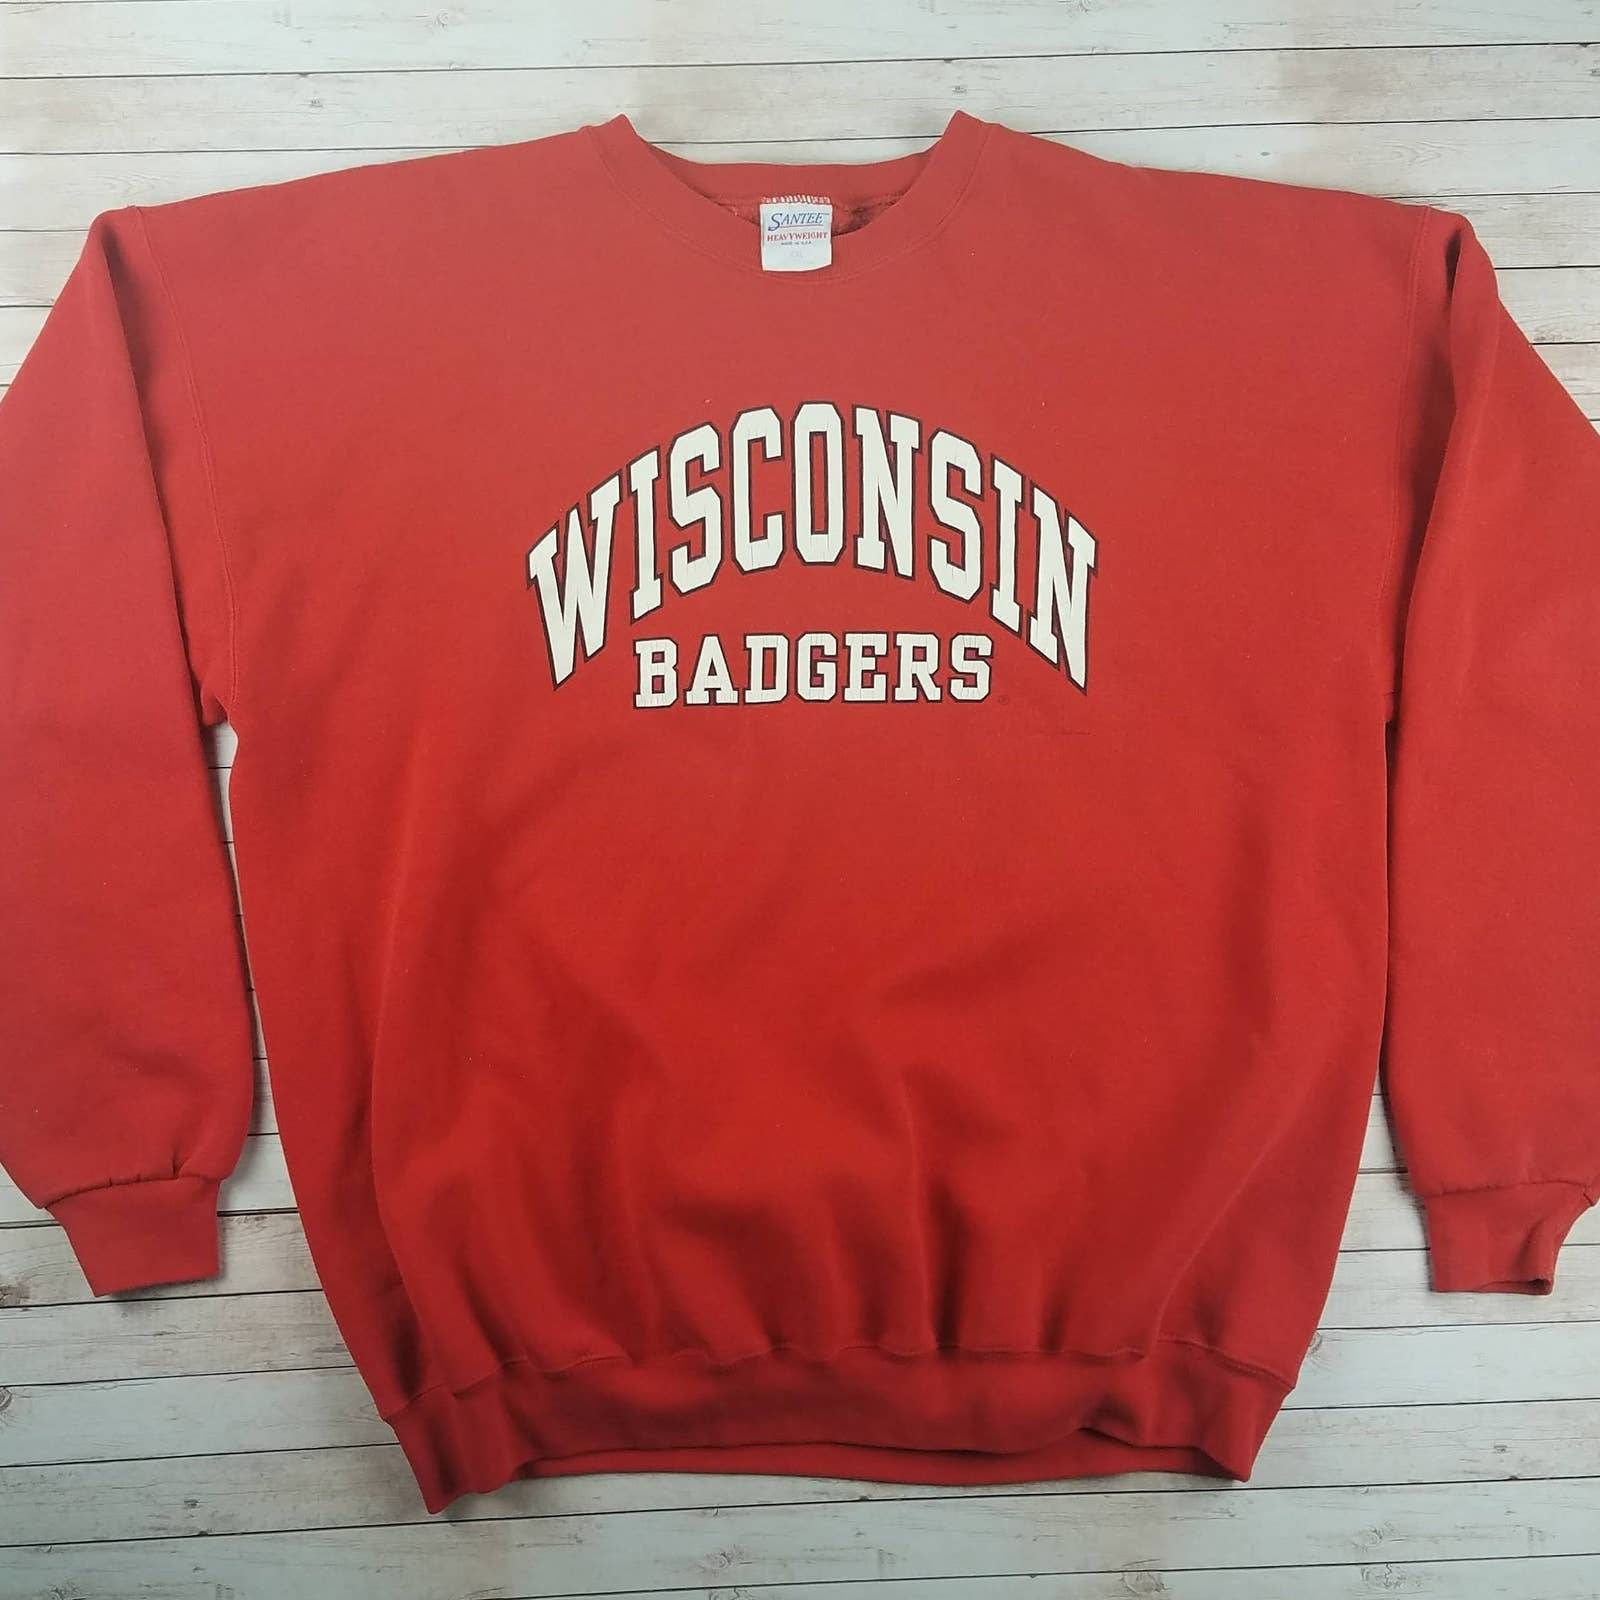 VTG 90s Wisconsin Badgers Red Sweatshirt